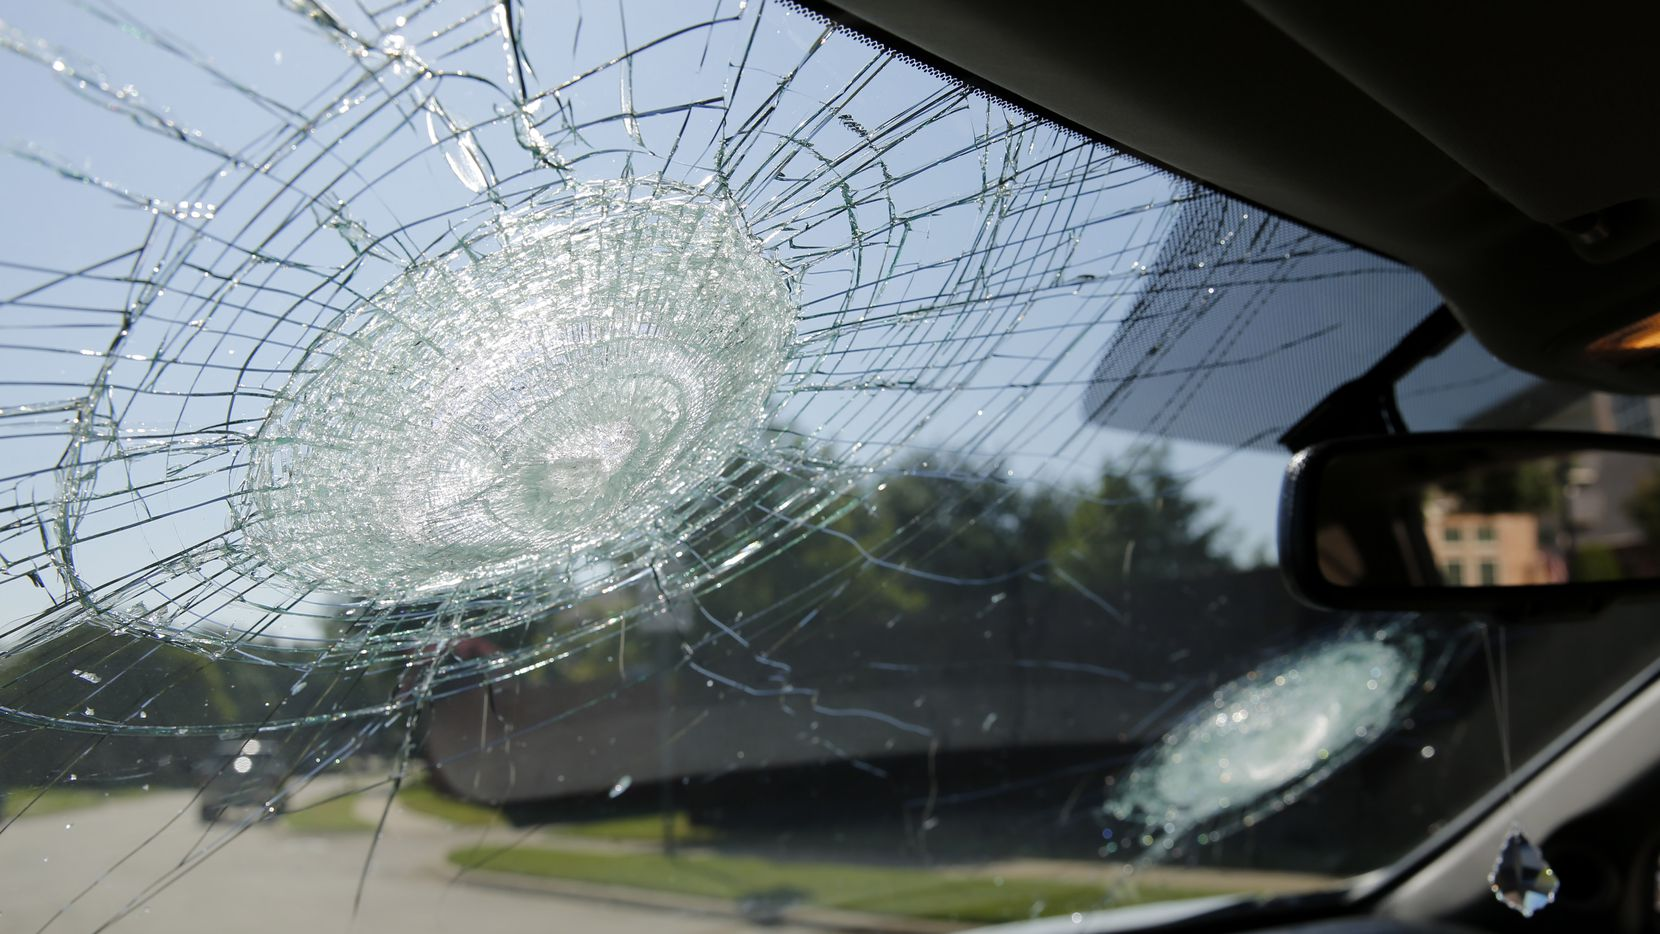 A windshield in Coppell took a hit from hail on June 6, 2018, when early-morning hailstorms caused damage in several areas in the metroplex.